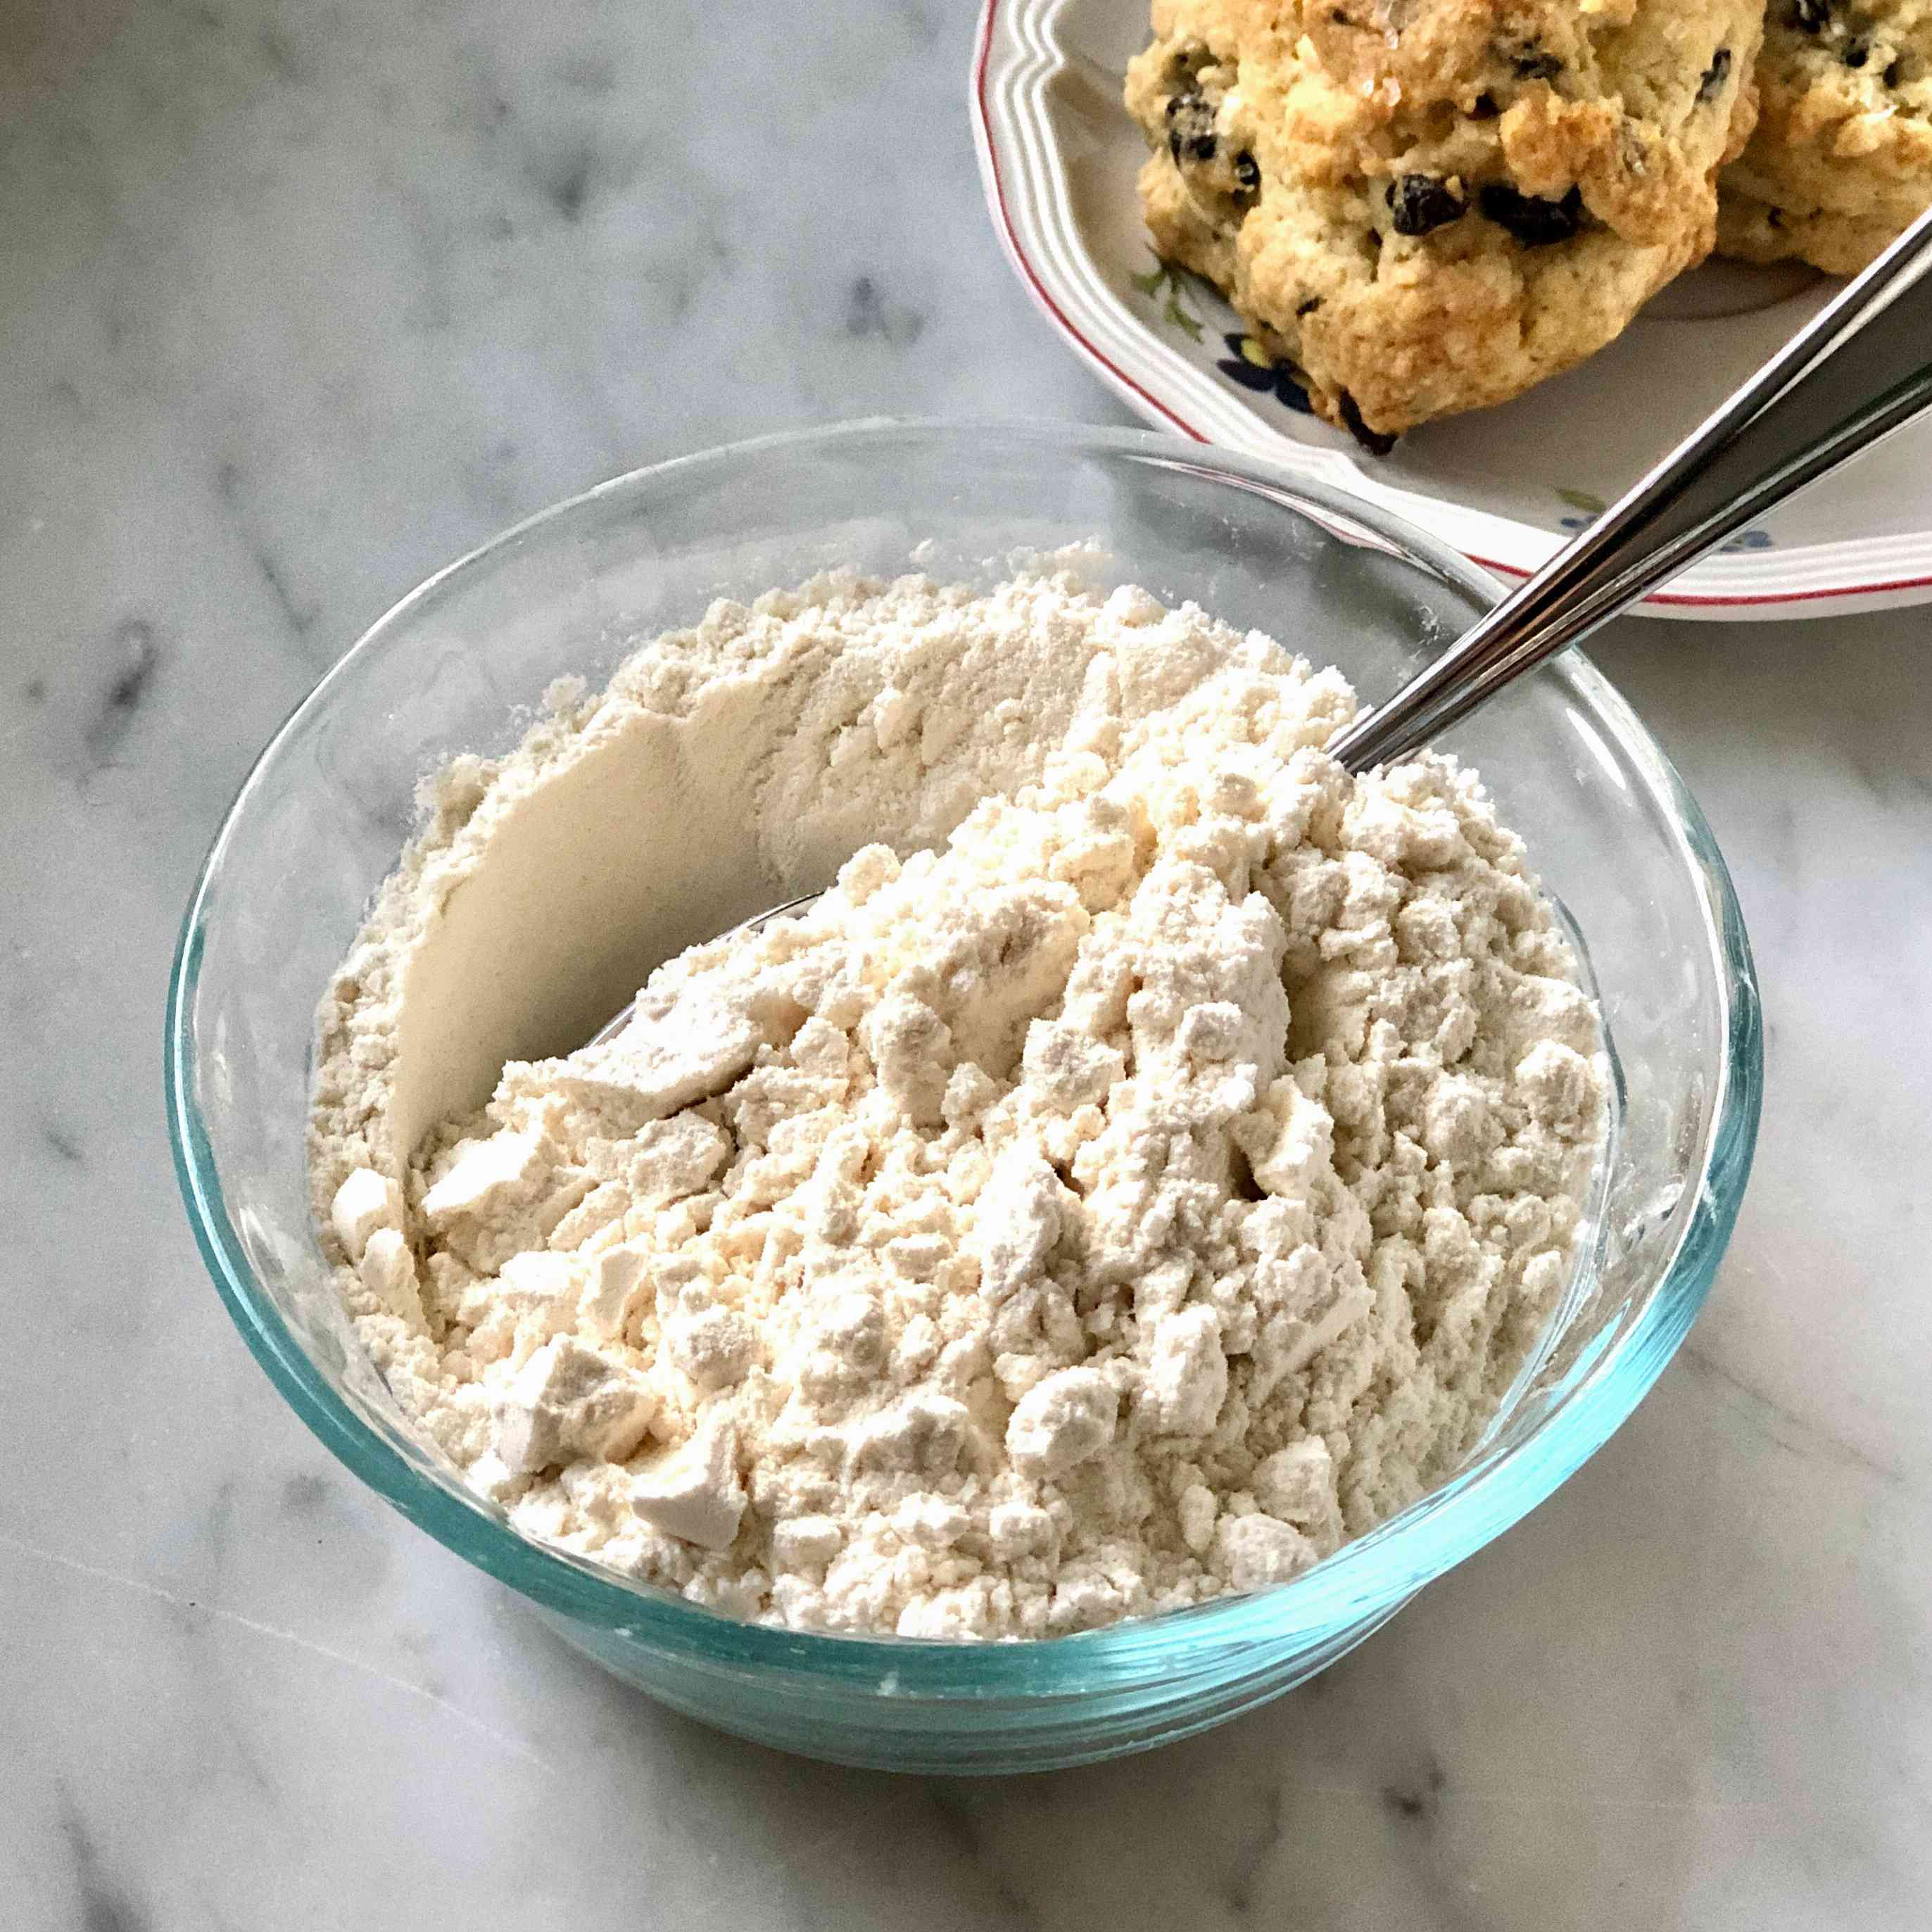 How to Make Self-Rising Flour Tester Image